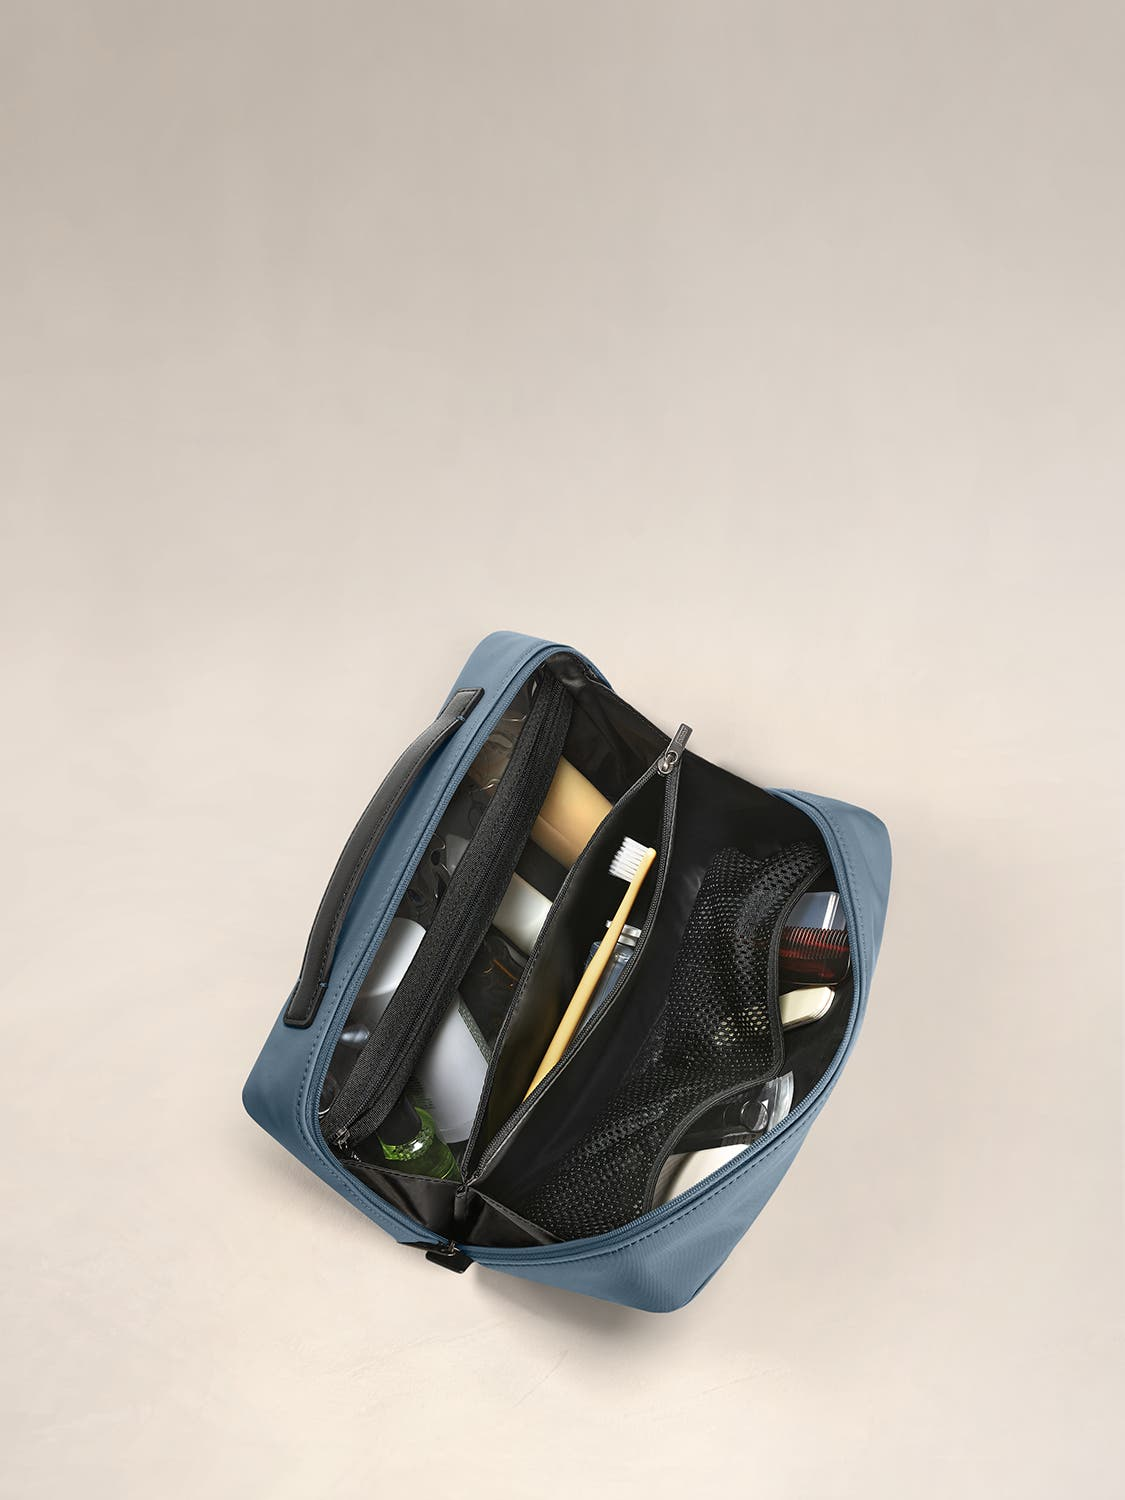 Inside view of a travel toiletry kit in coast with black interior pockets full of travel toiletries.